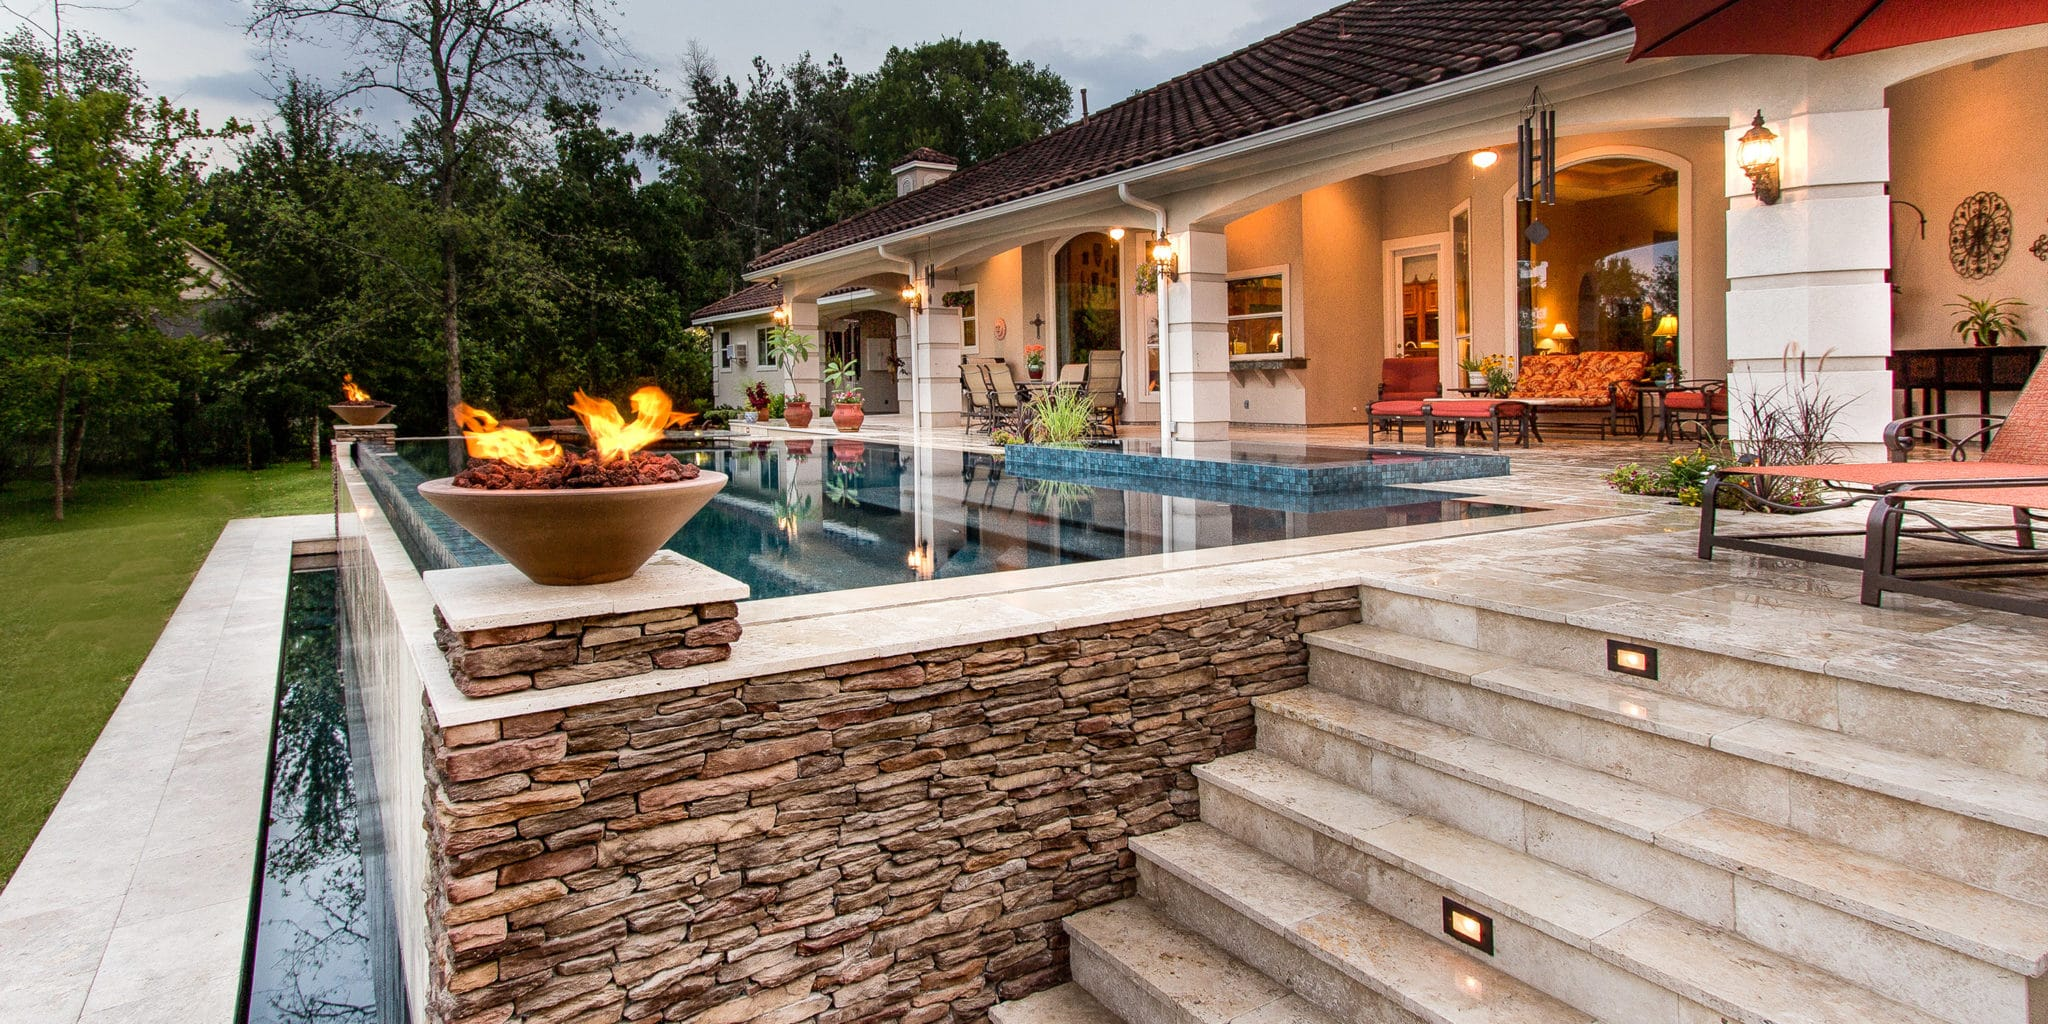 Raised pool with water feature